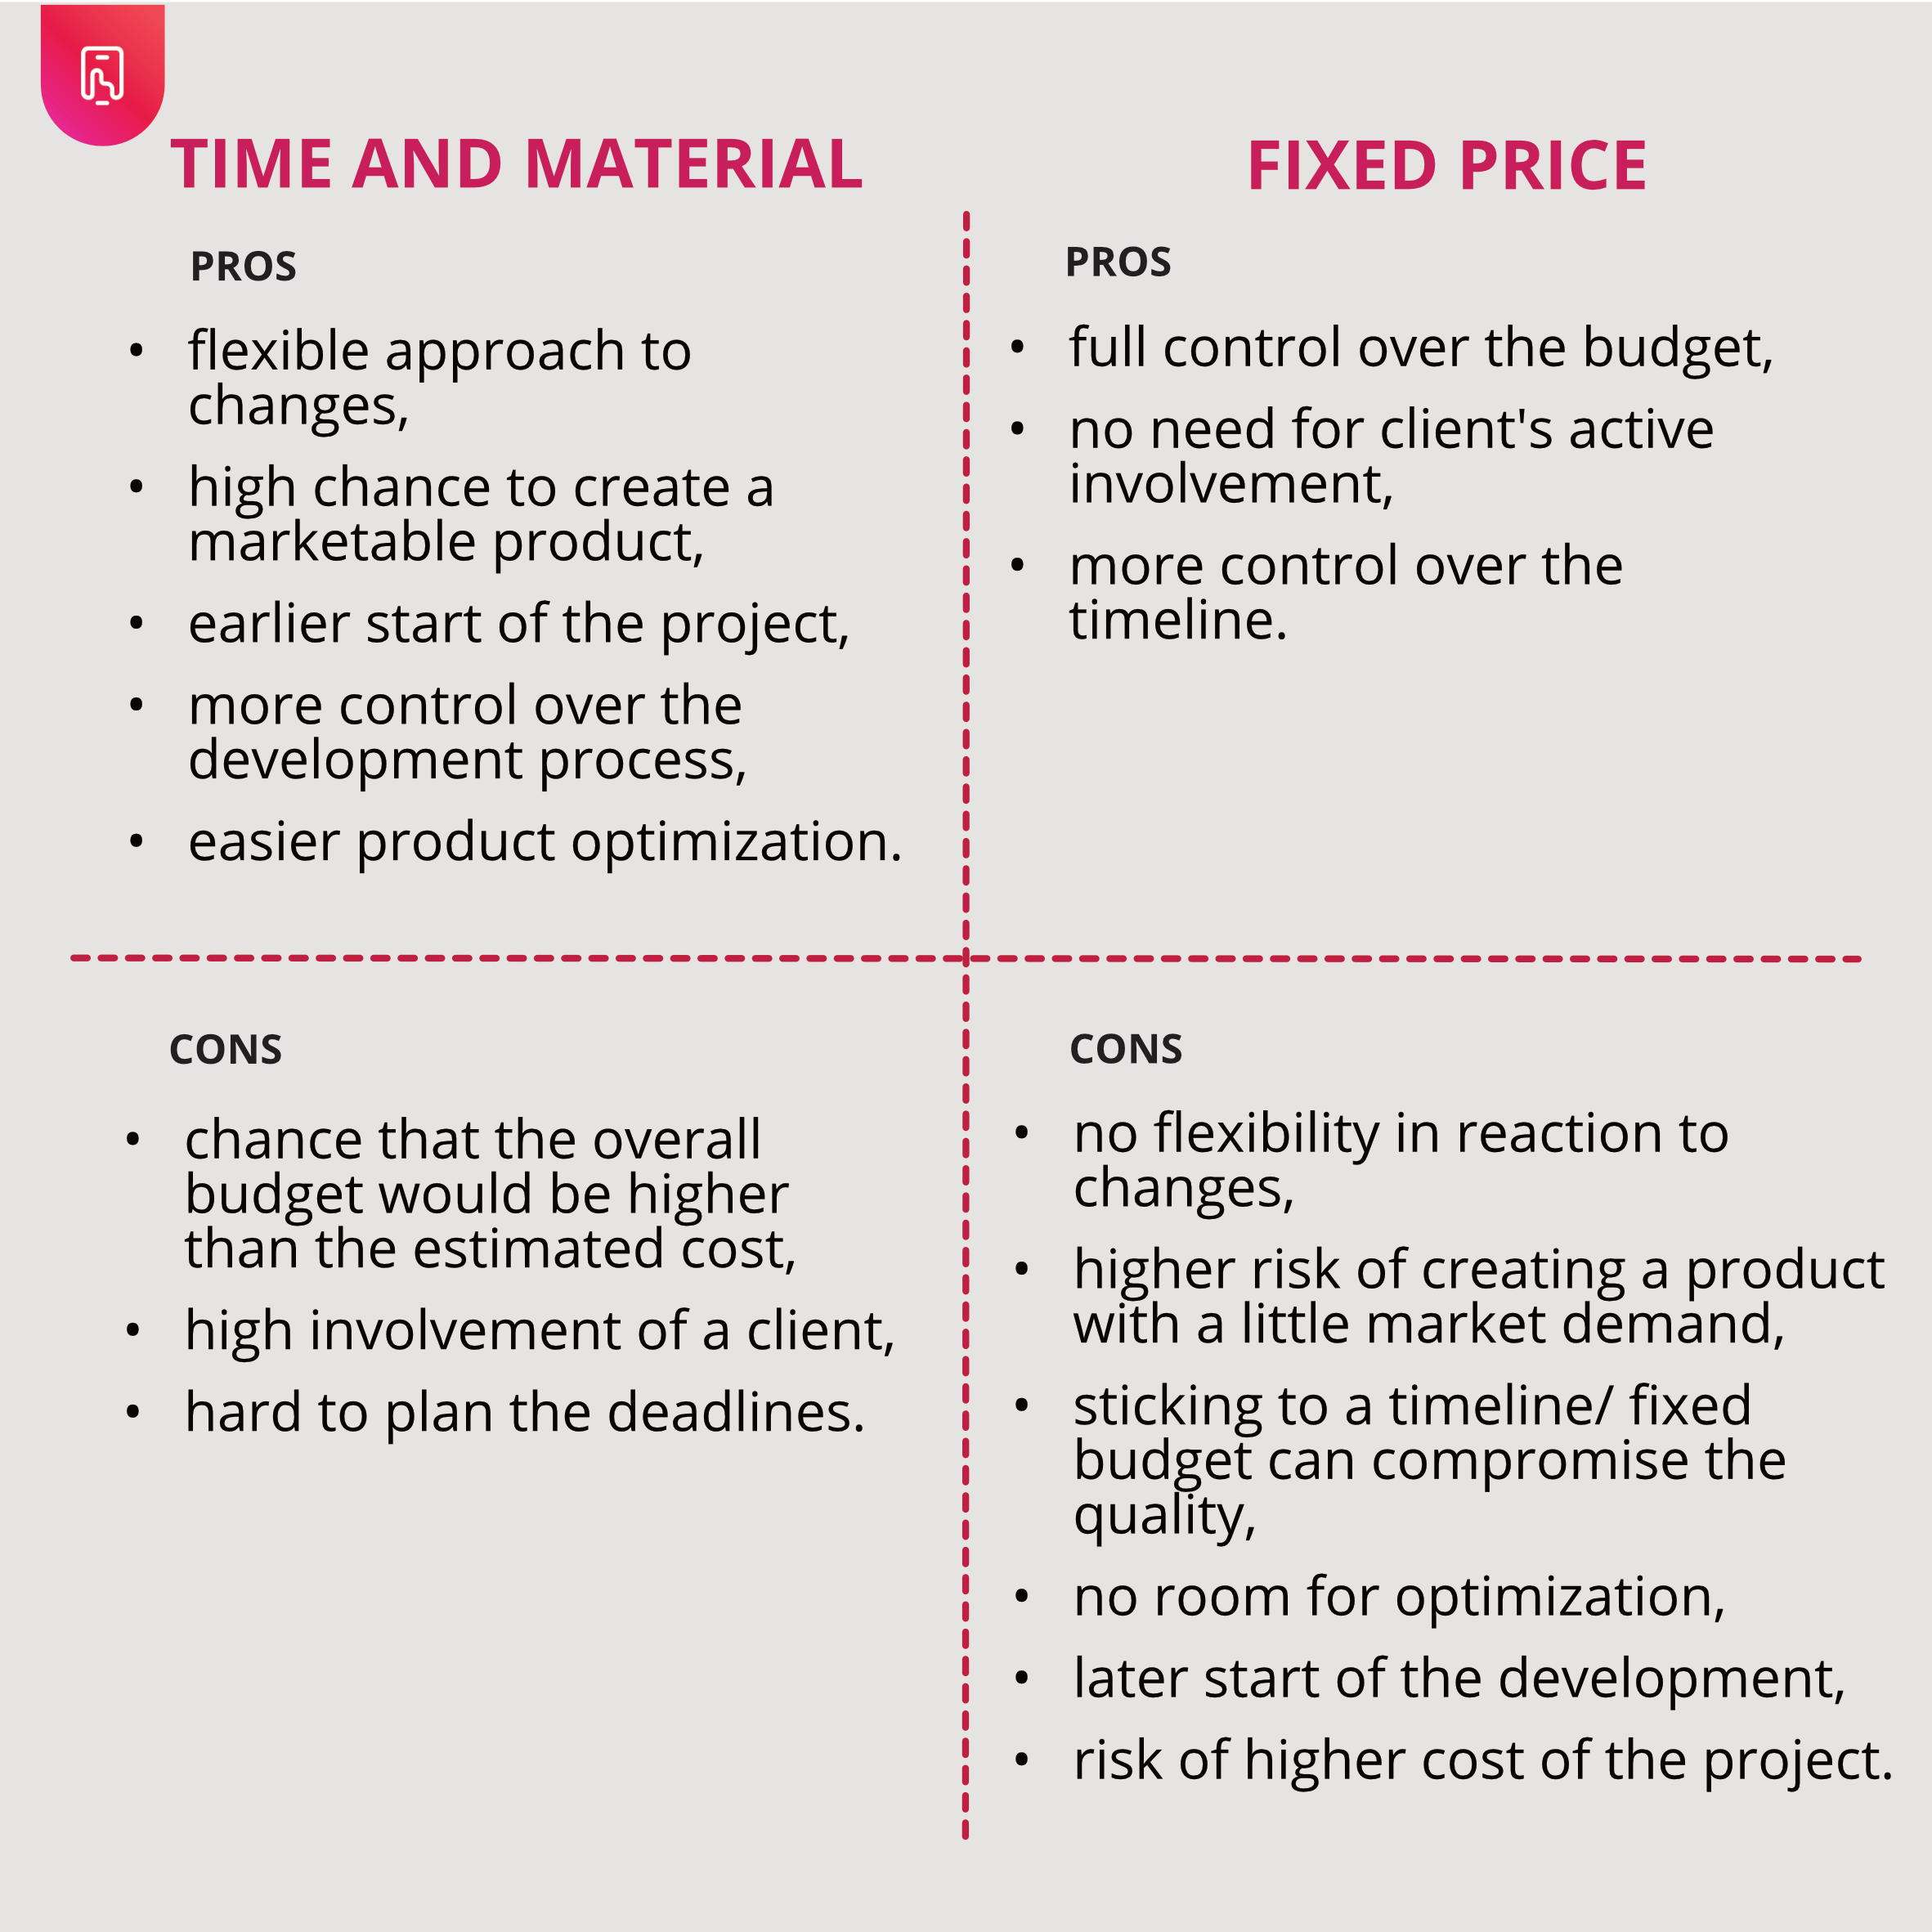 Pros and cons - time and materials vs fixed price model